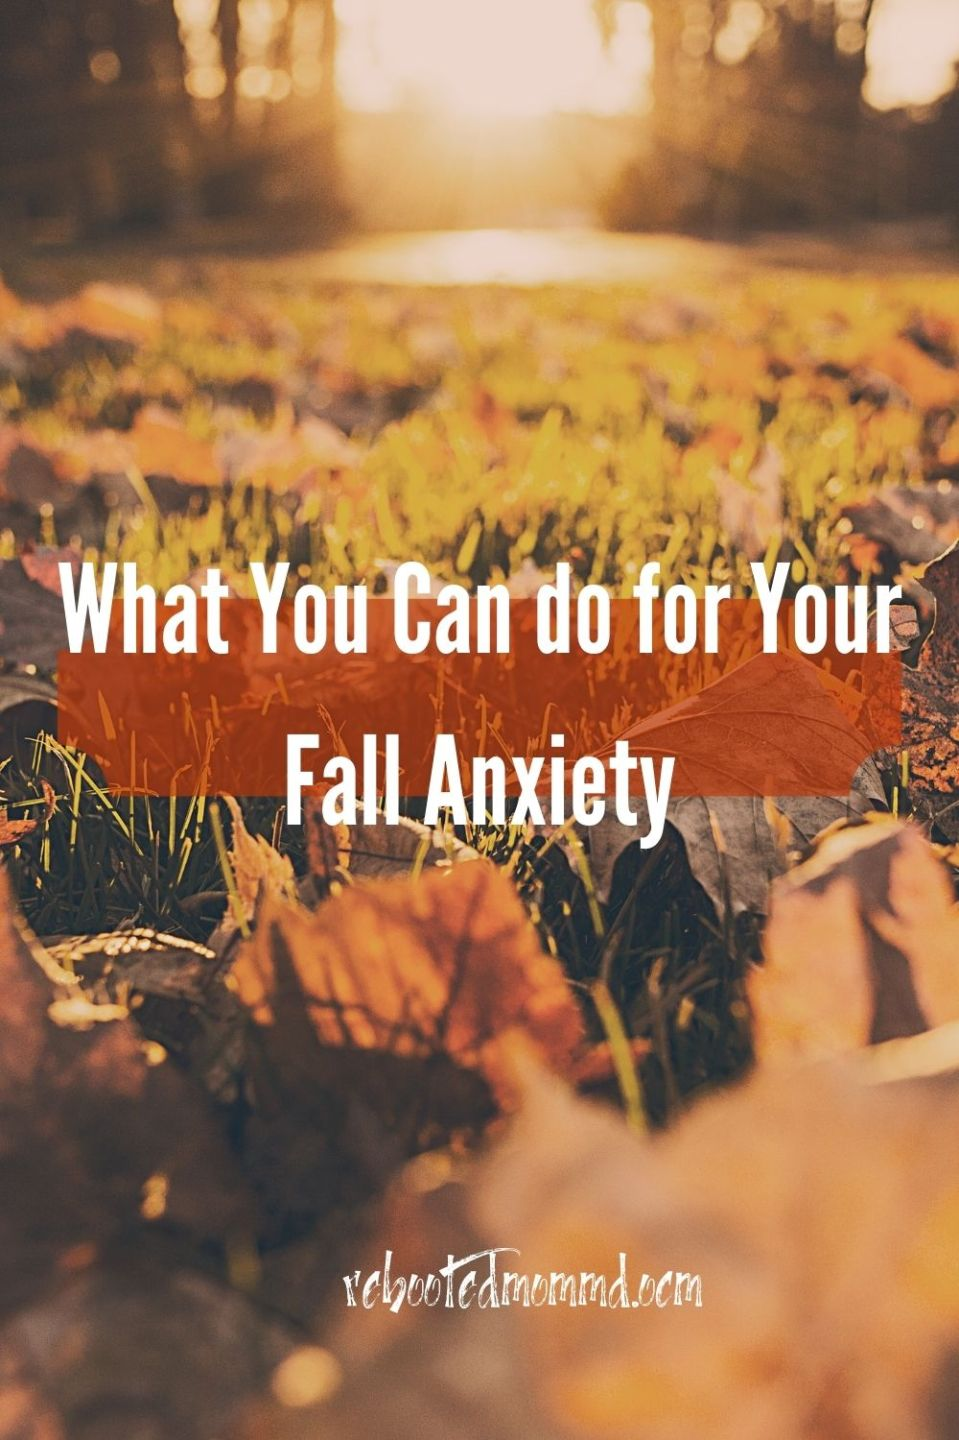 What You Can do for Your Fall Anxiety